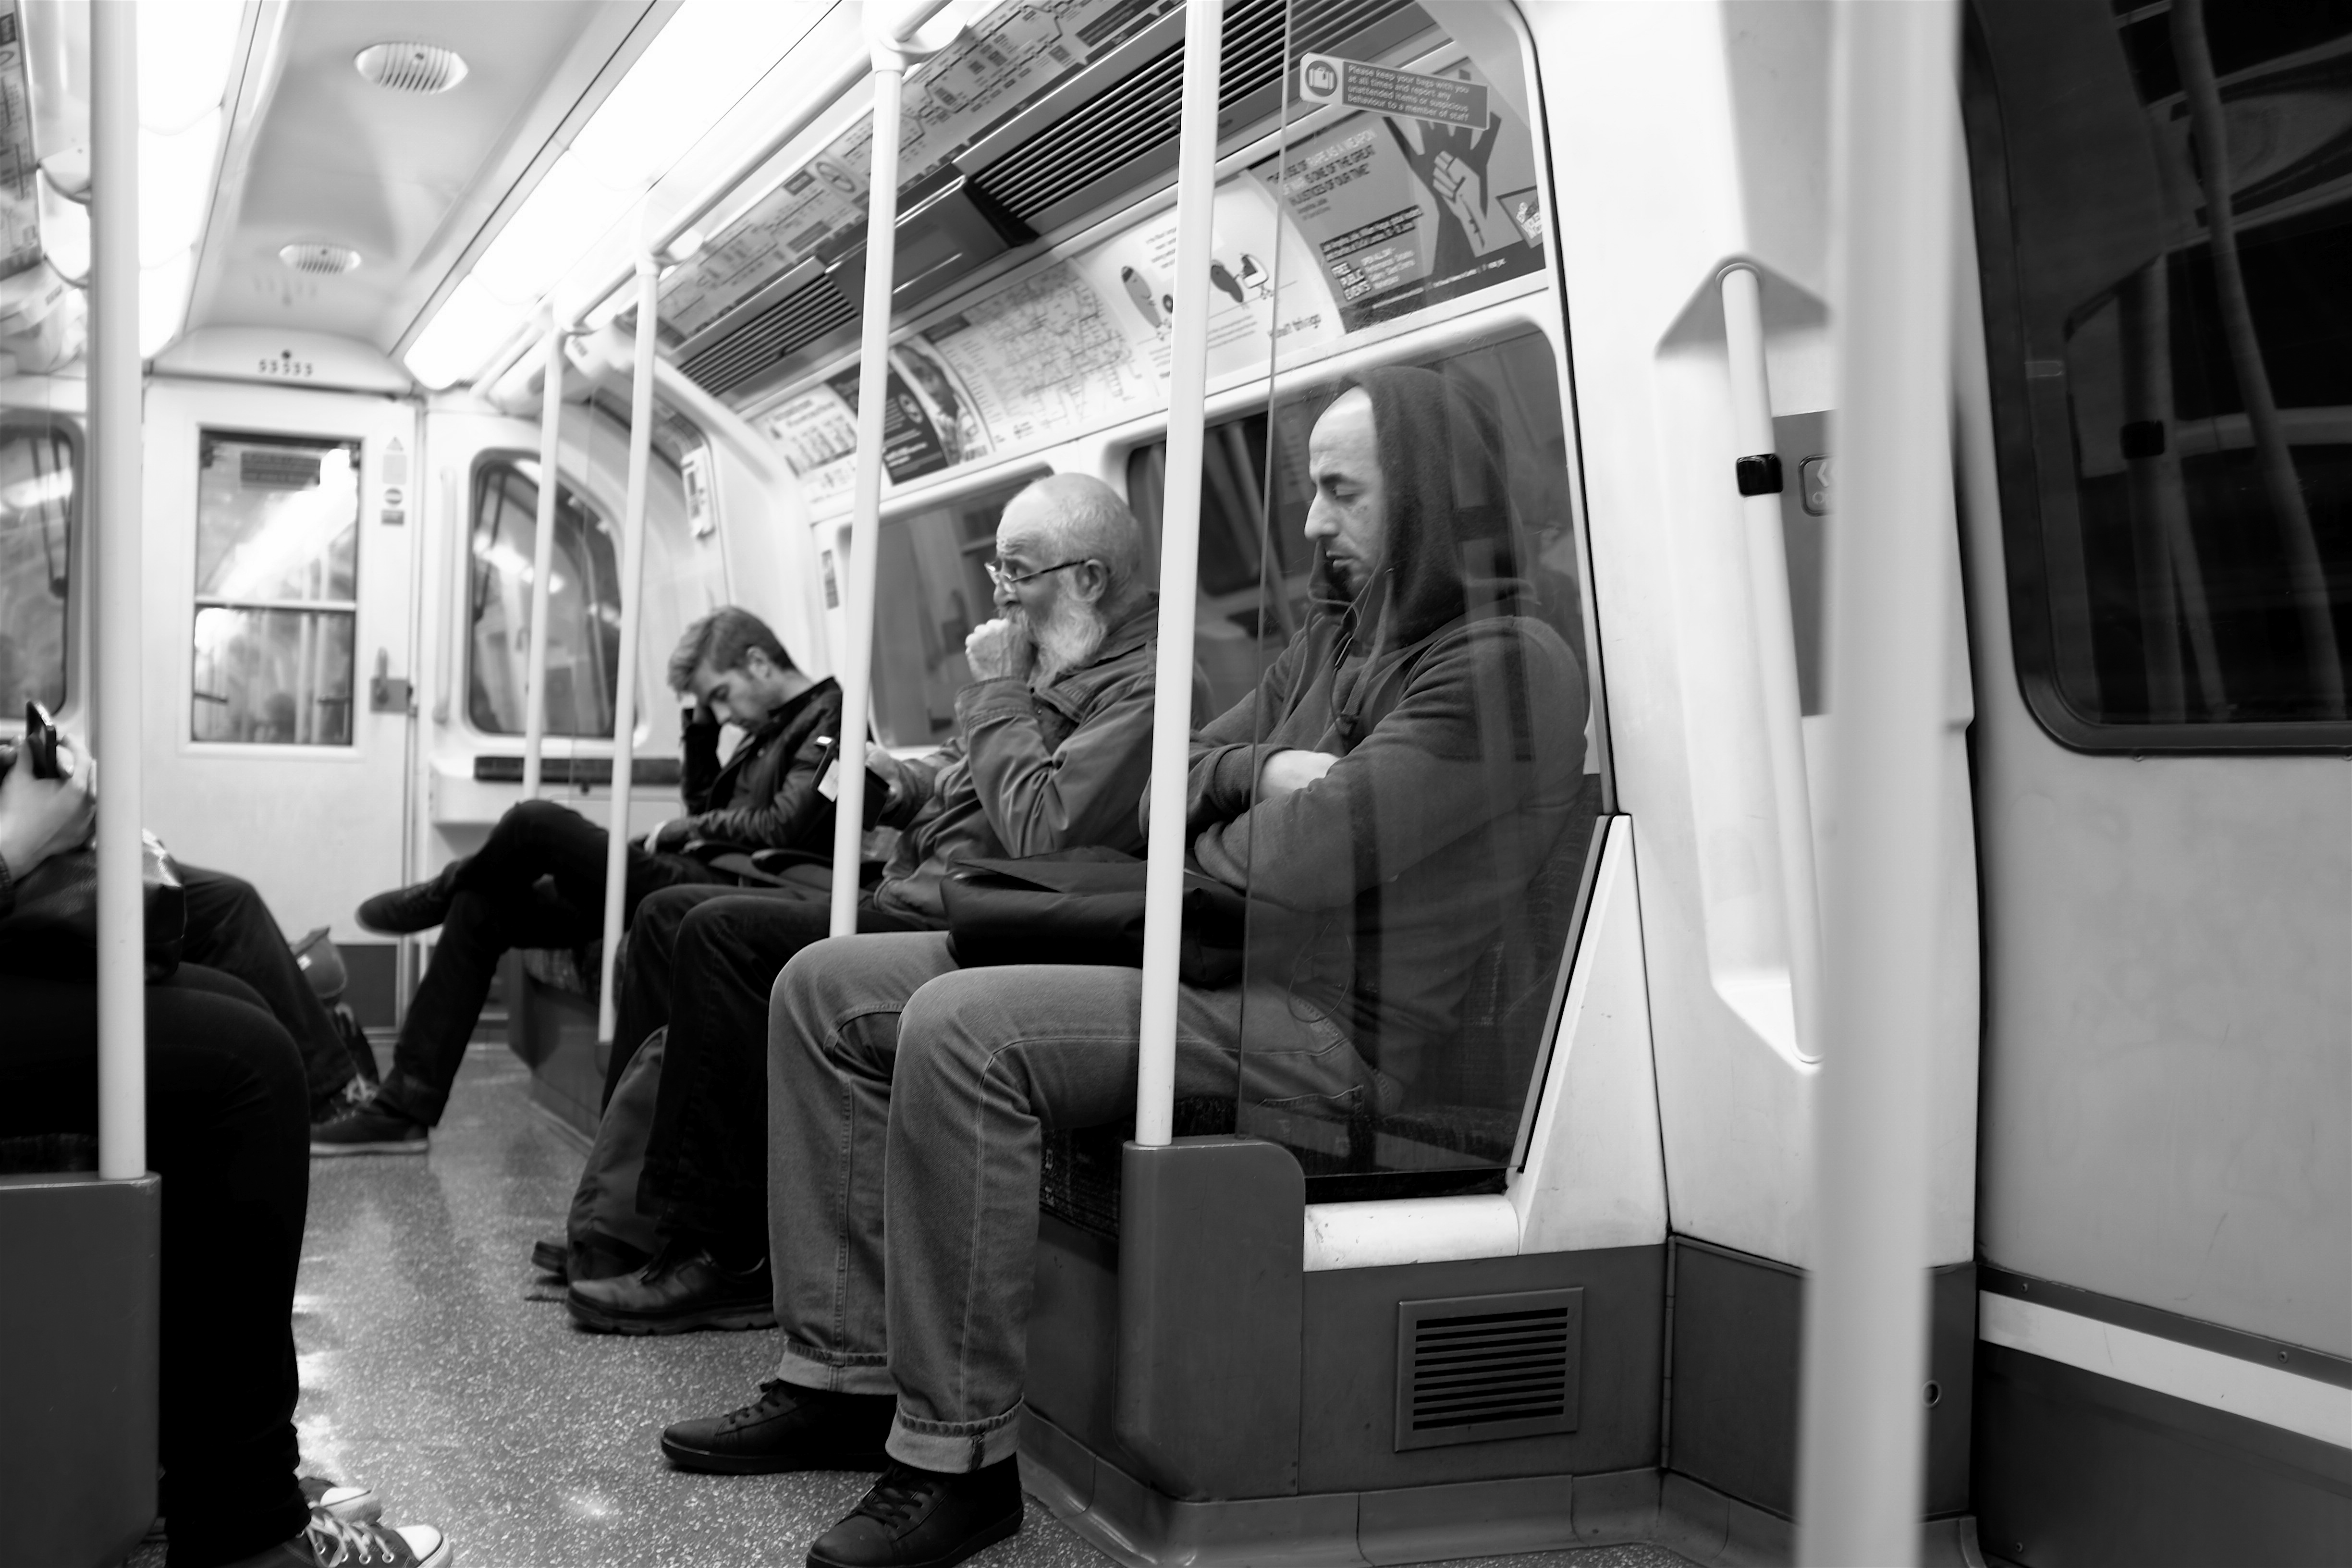 Sleeping on the Tube London